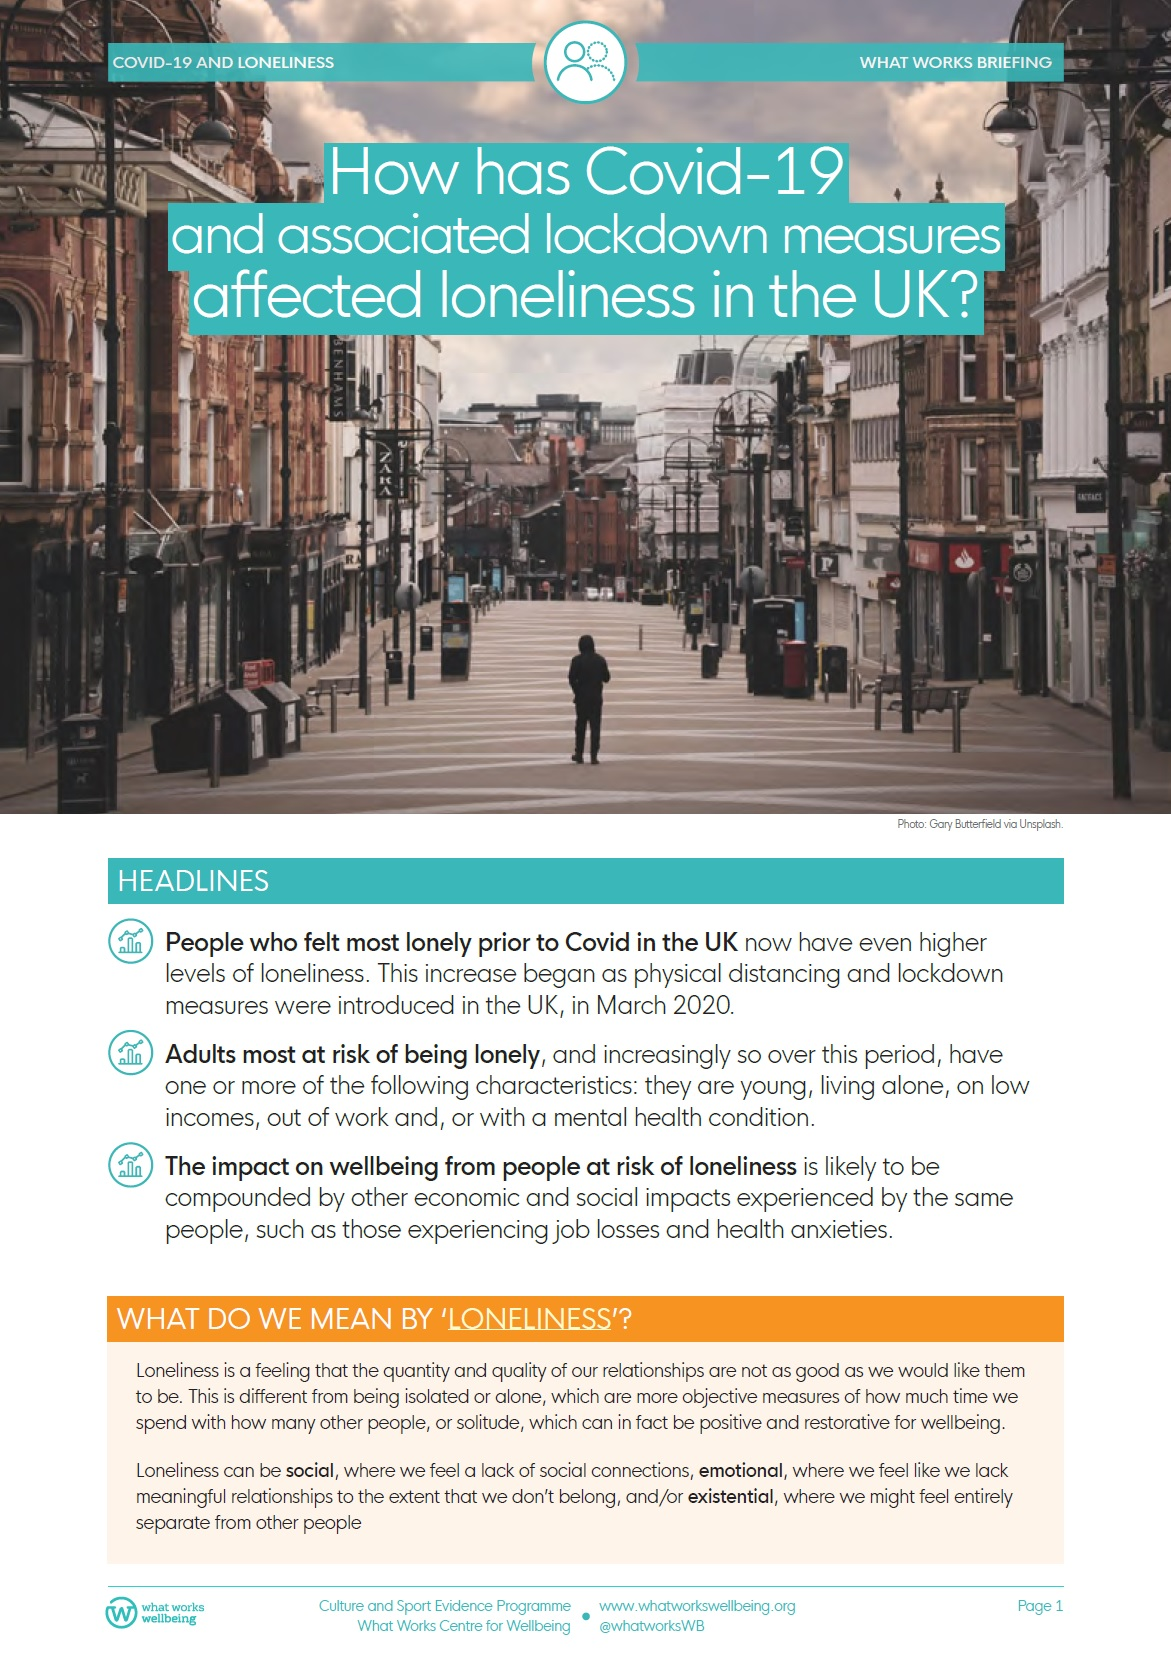 How has Covid-19 affected loneliness?